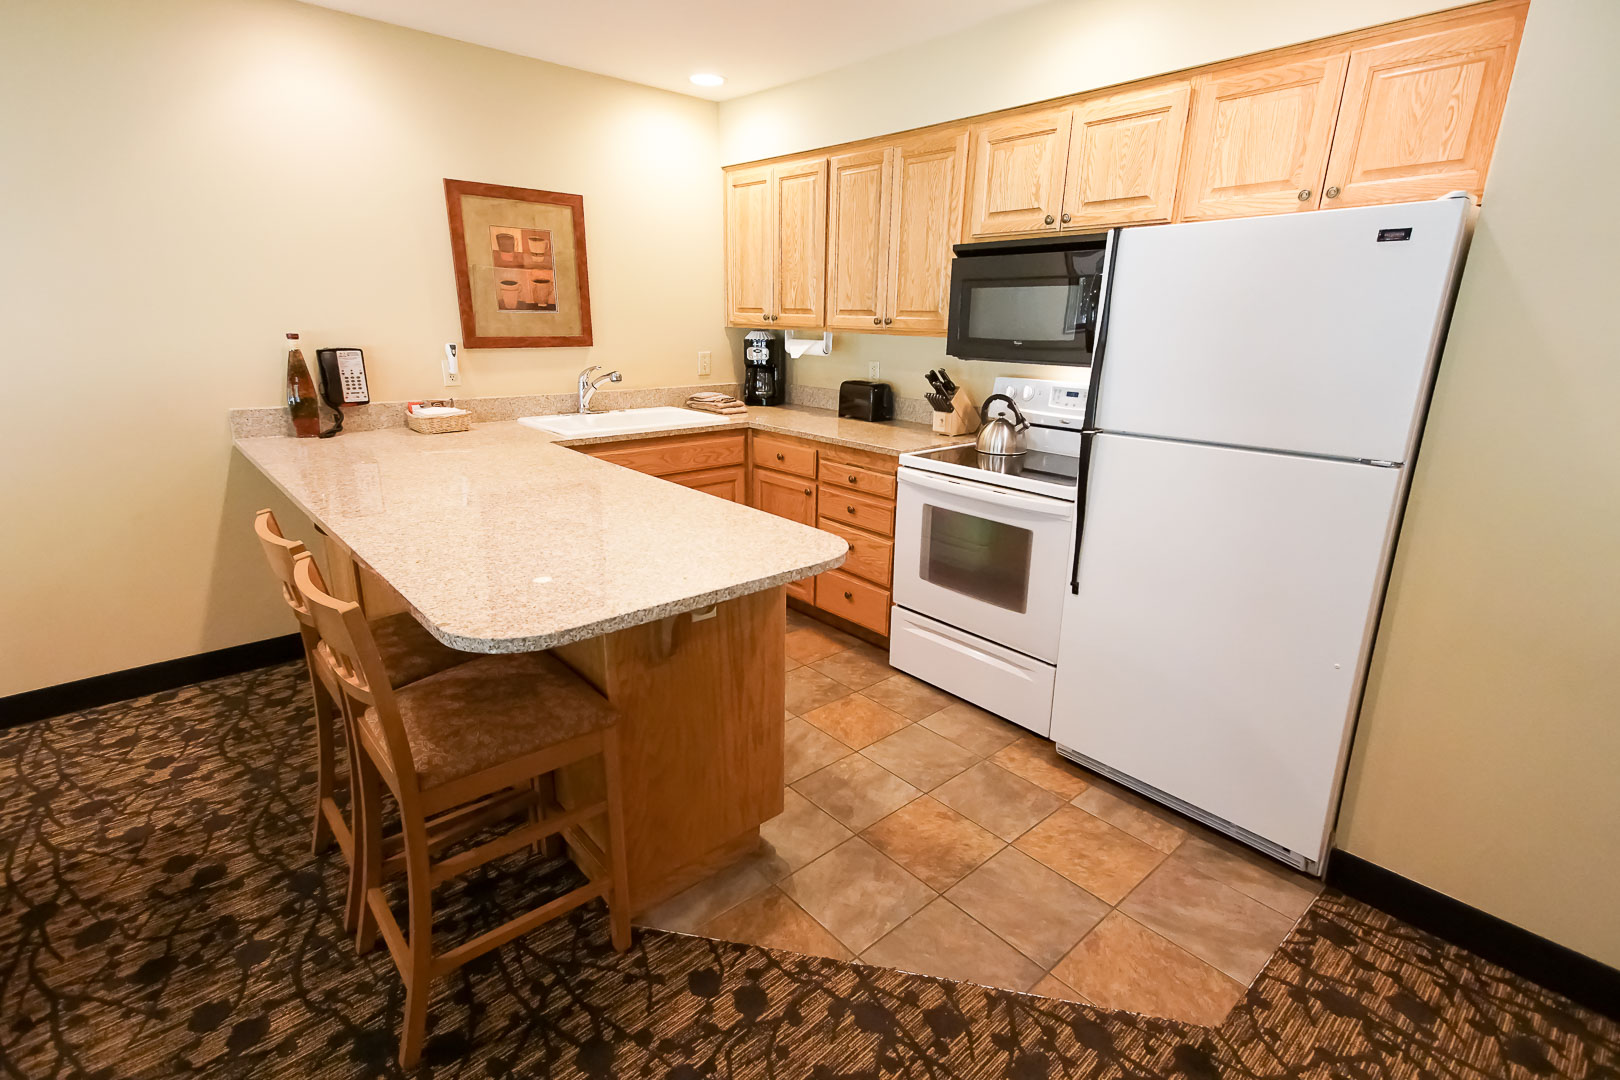 A clean kitchen area at VRI's Whispering Woods Resort in Oregon.